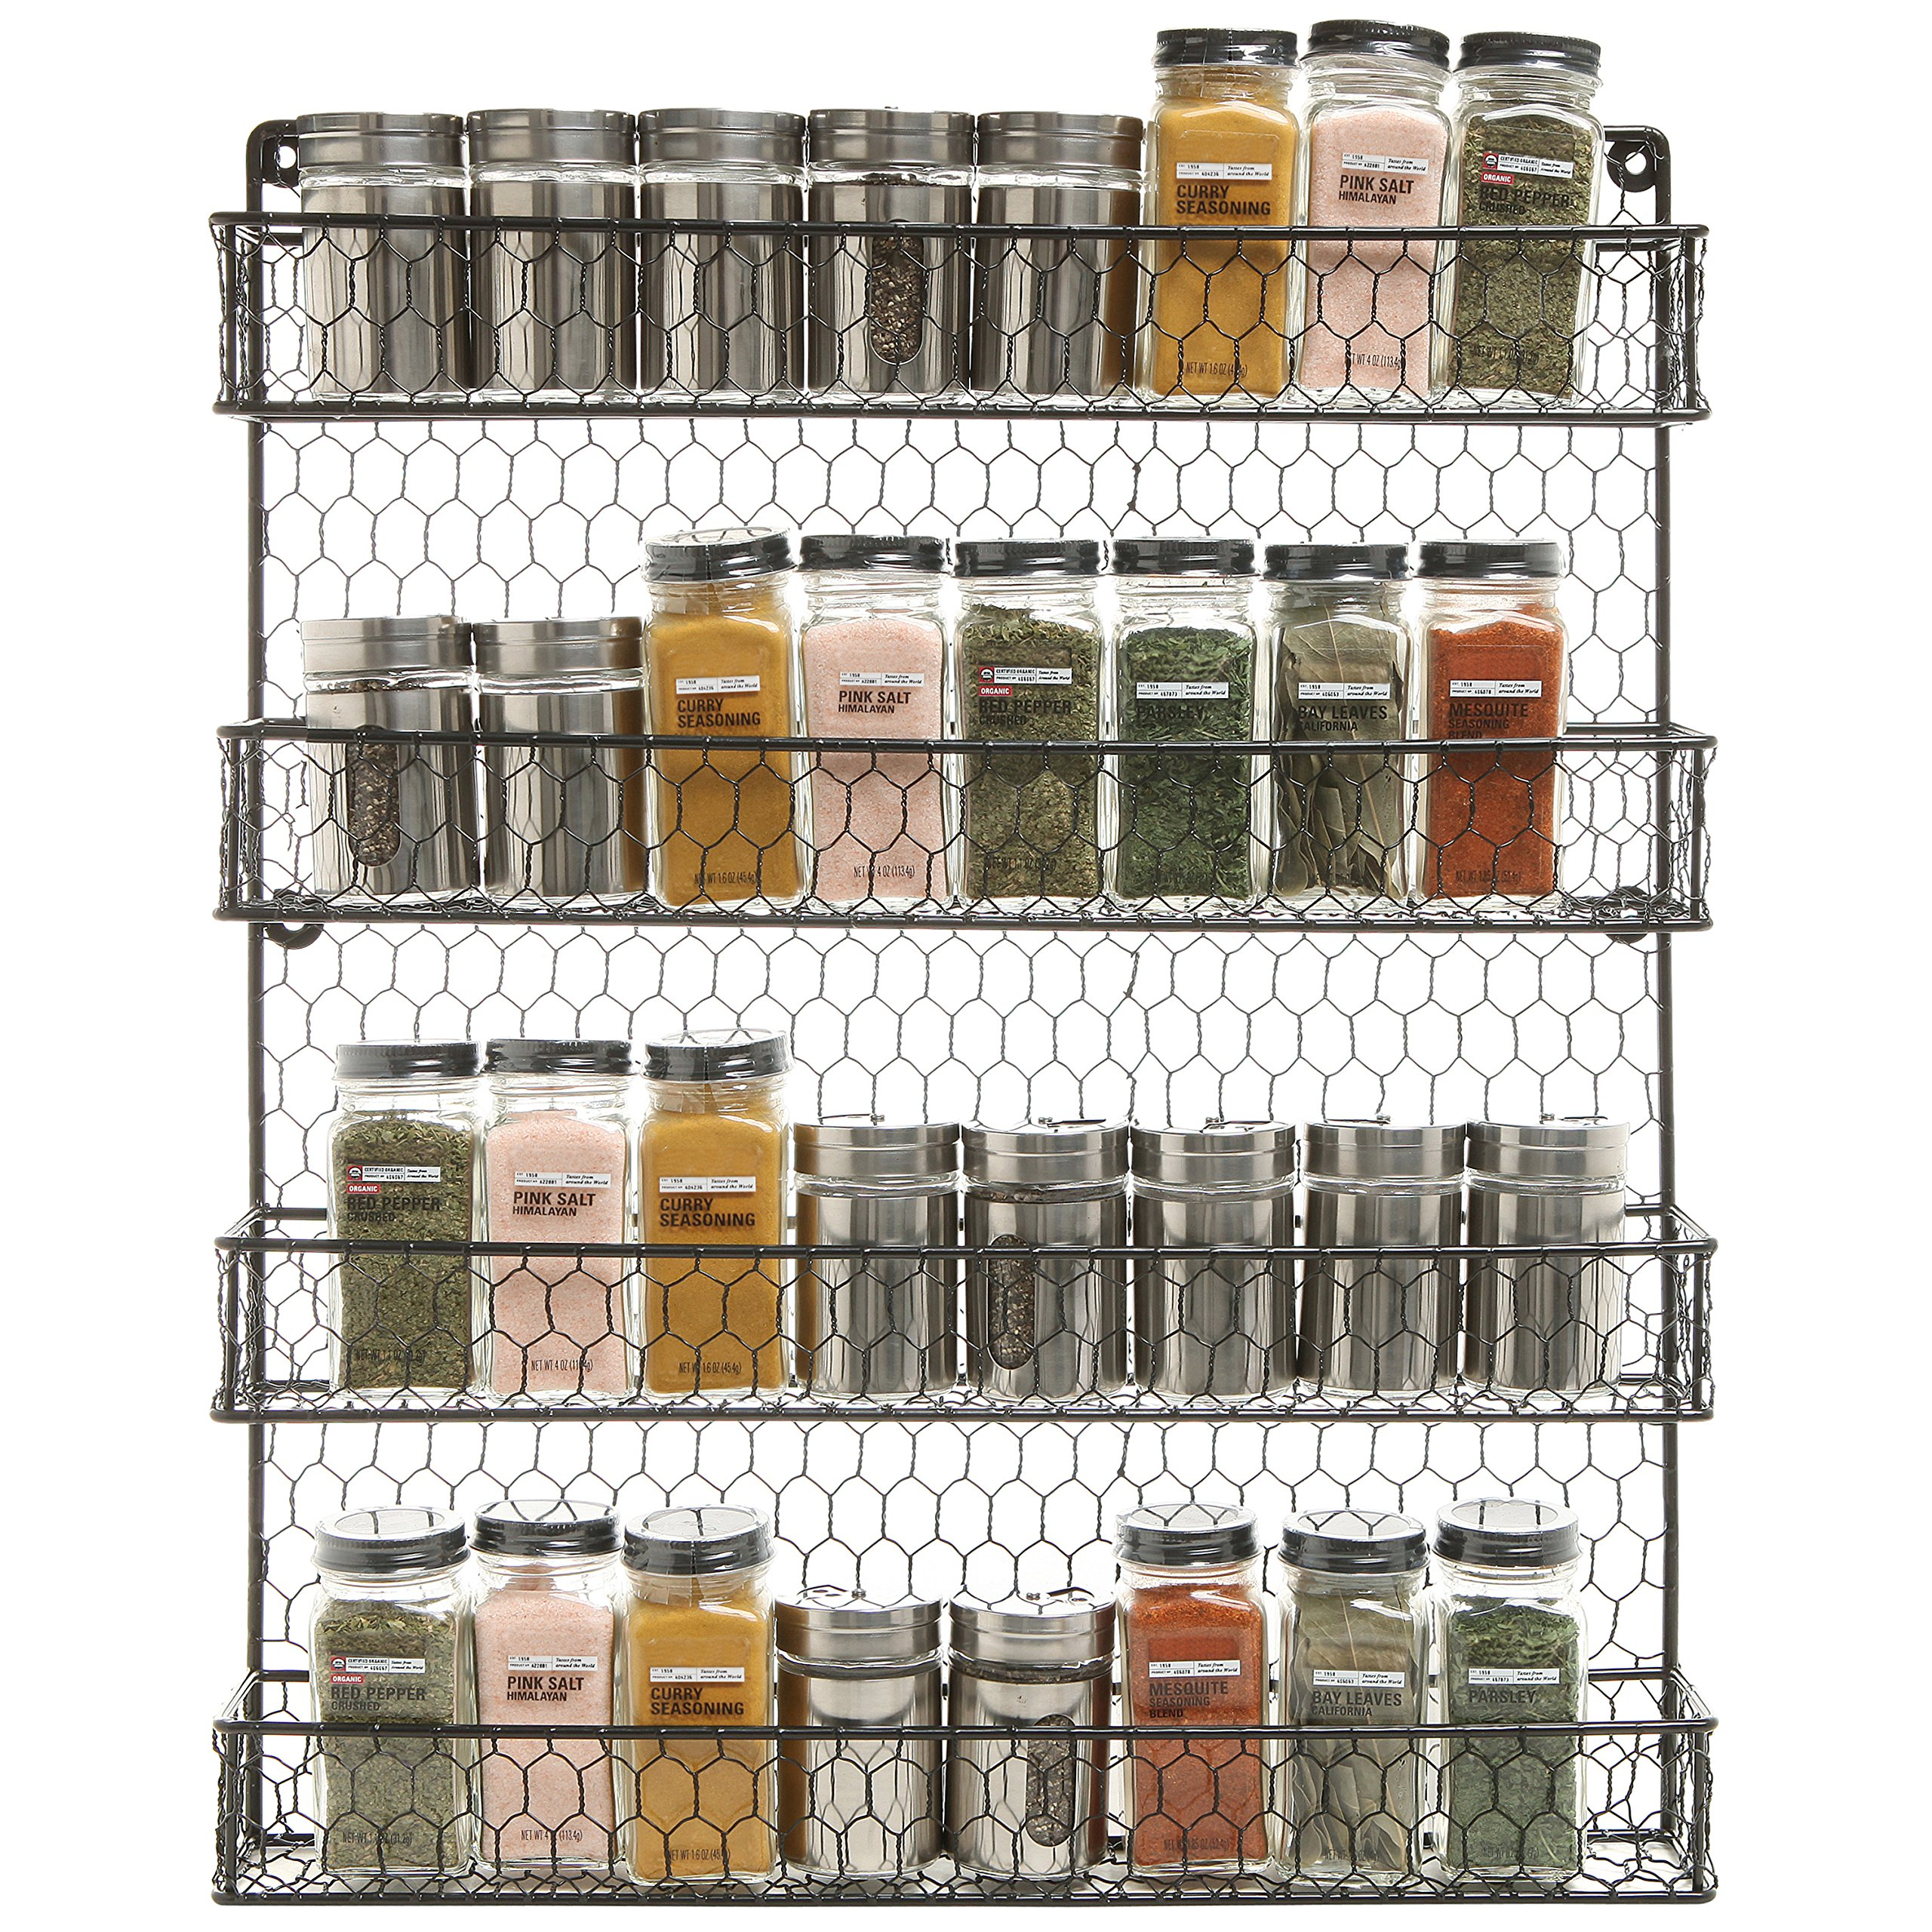 4 Tier Black Country Rustic Chicken Wire Pantry, Cabinet or Wall Mounted Spice Rack Storage Organizer by MyGift (Image #2)